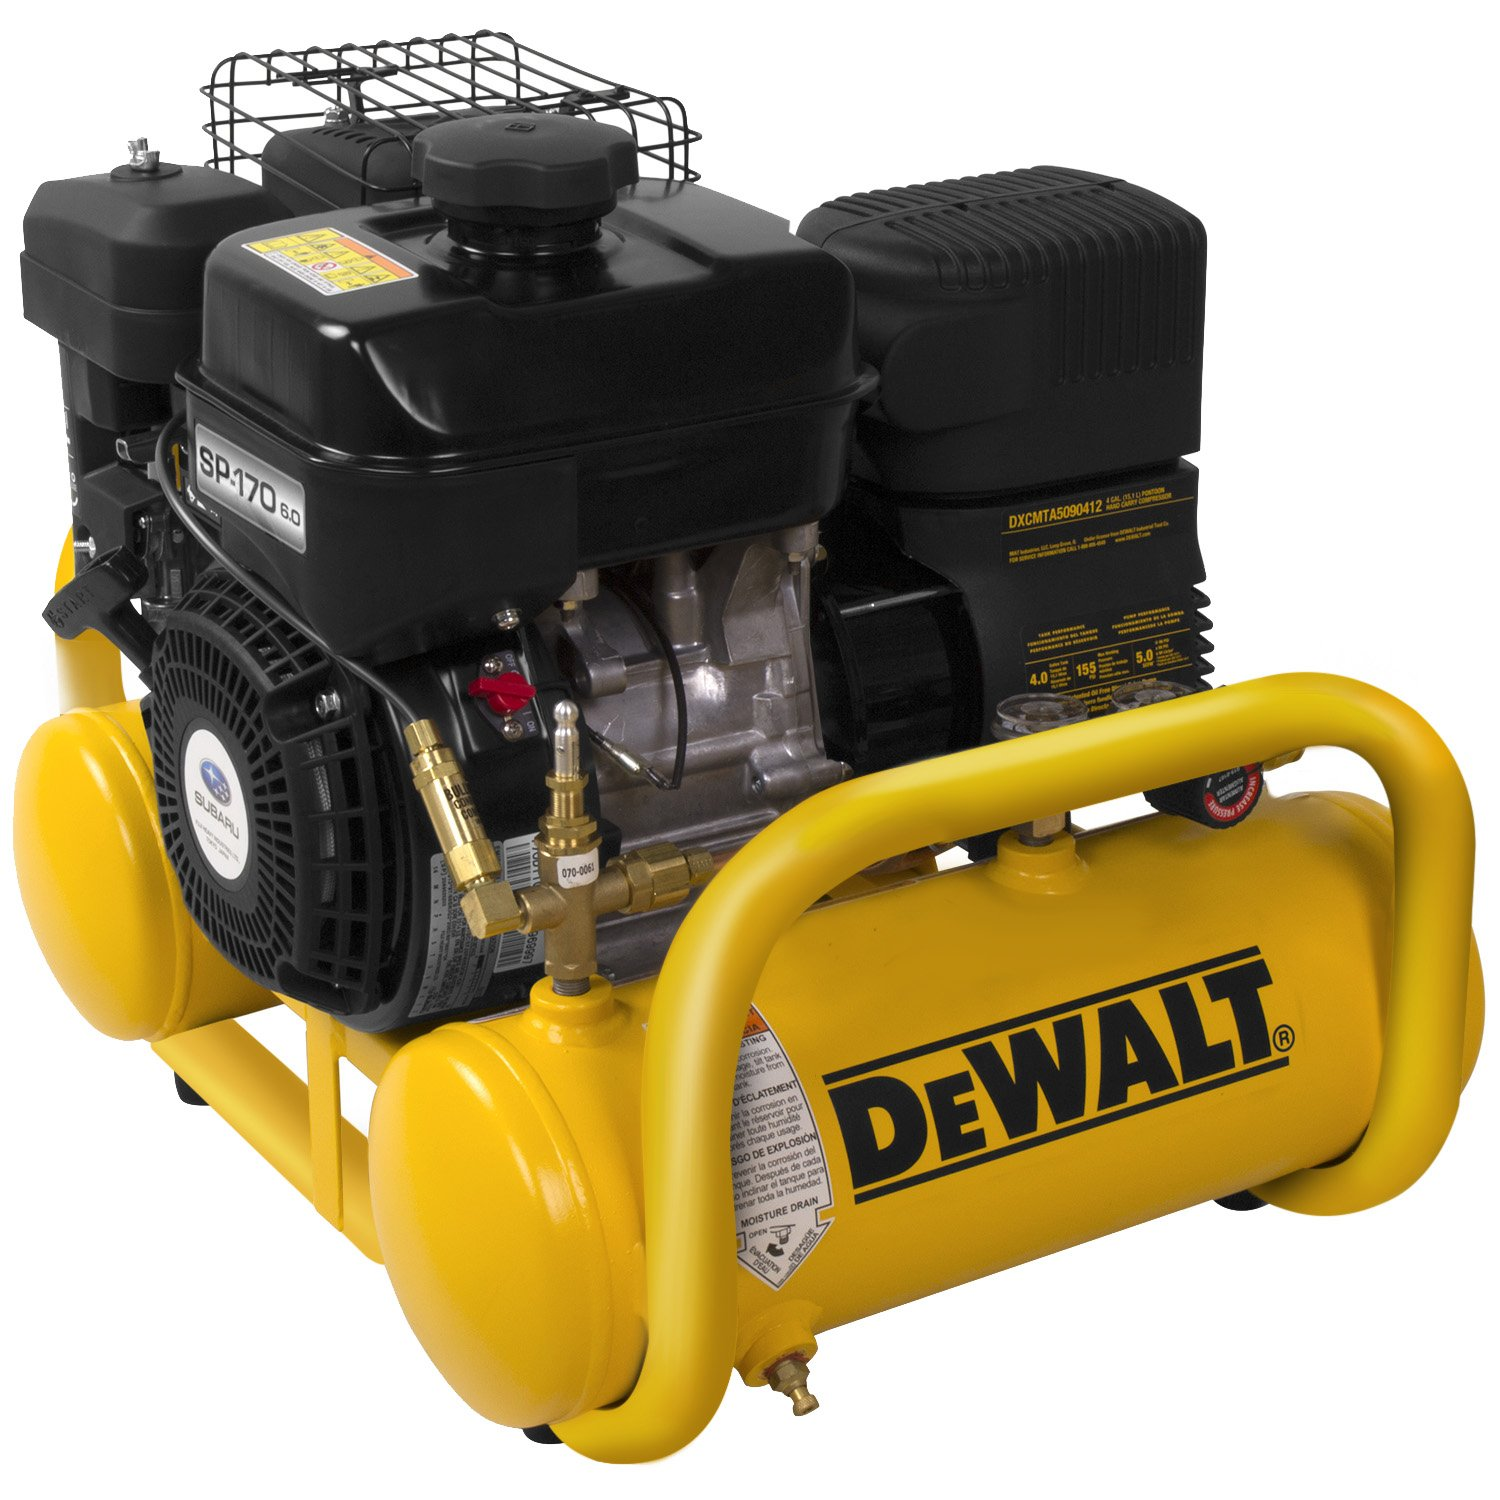 1.  <strong>DEWALT DXCMTA5090412 Gas Powered Air Compressor</strong>